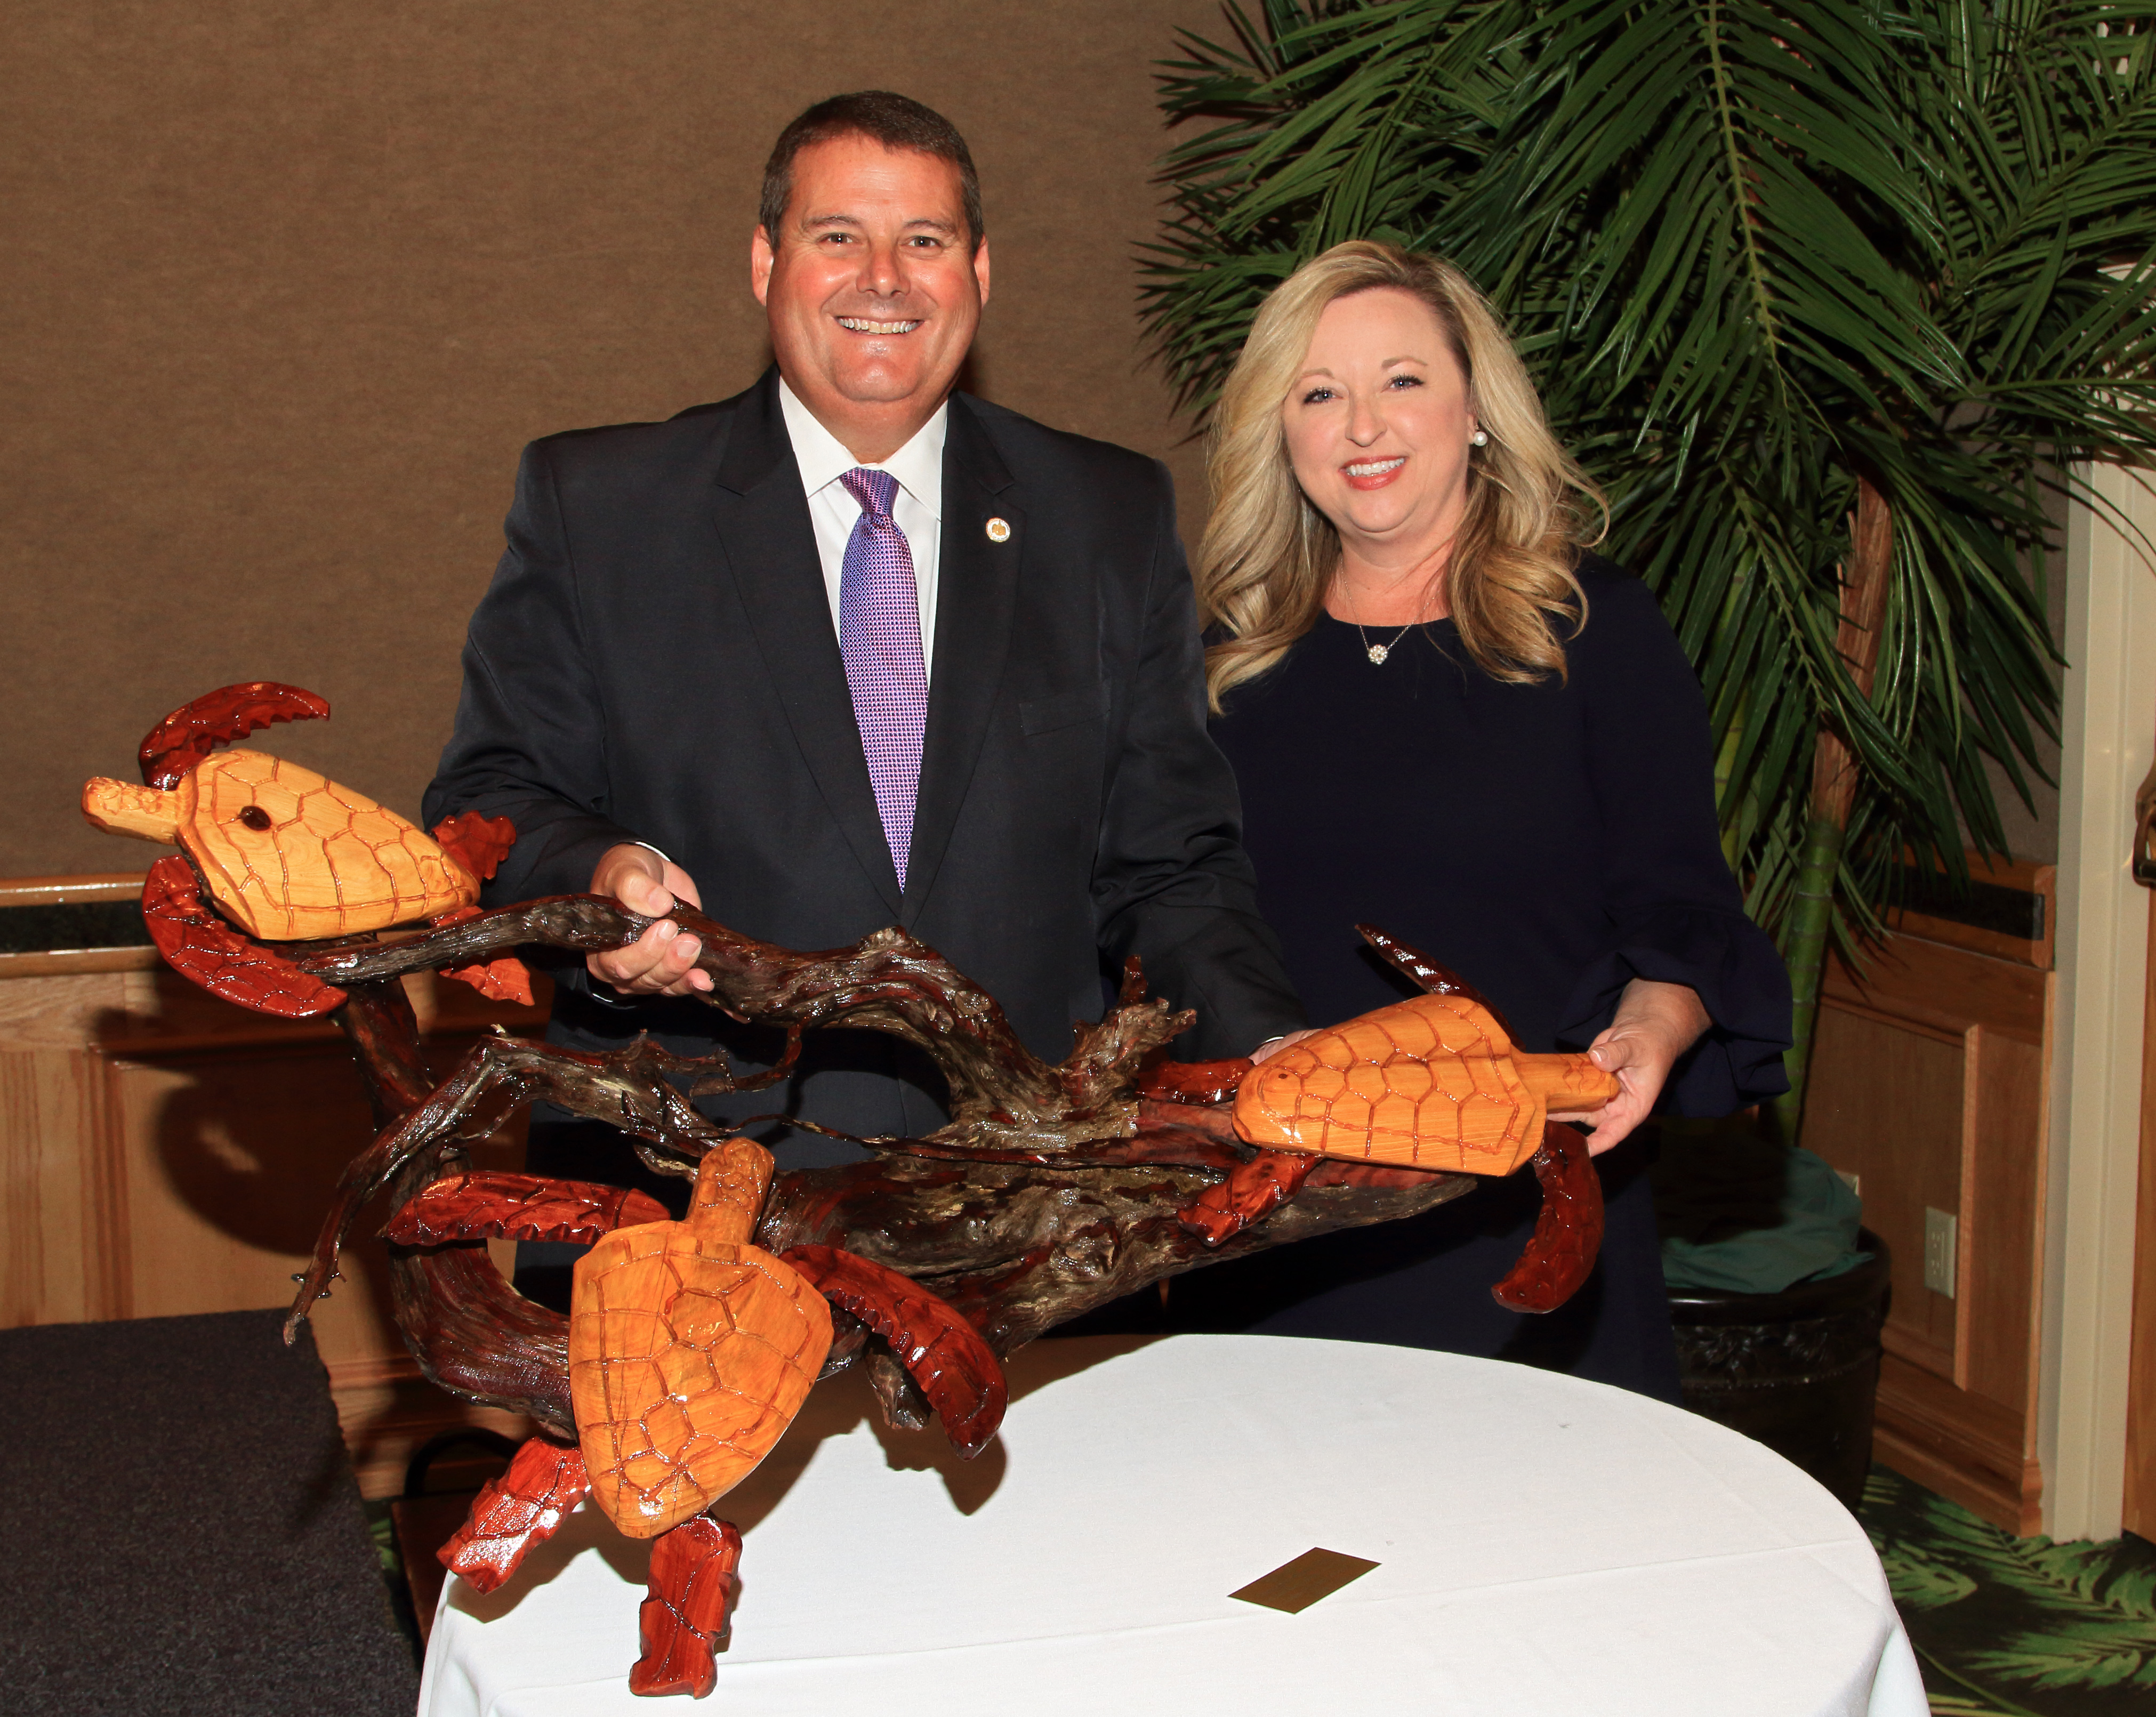 ADCNR Commissioner Chris Blankenship and his wife Allyson after being presented with the 2018 Lyles-Simpson Award.  Photo by Jeff Rester, Gulf States Marine Fisheries Commission